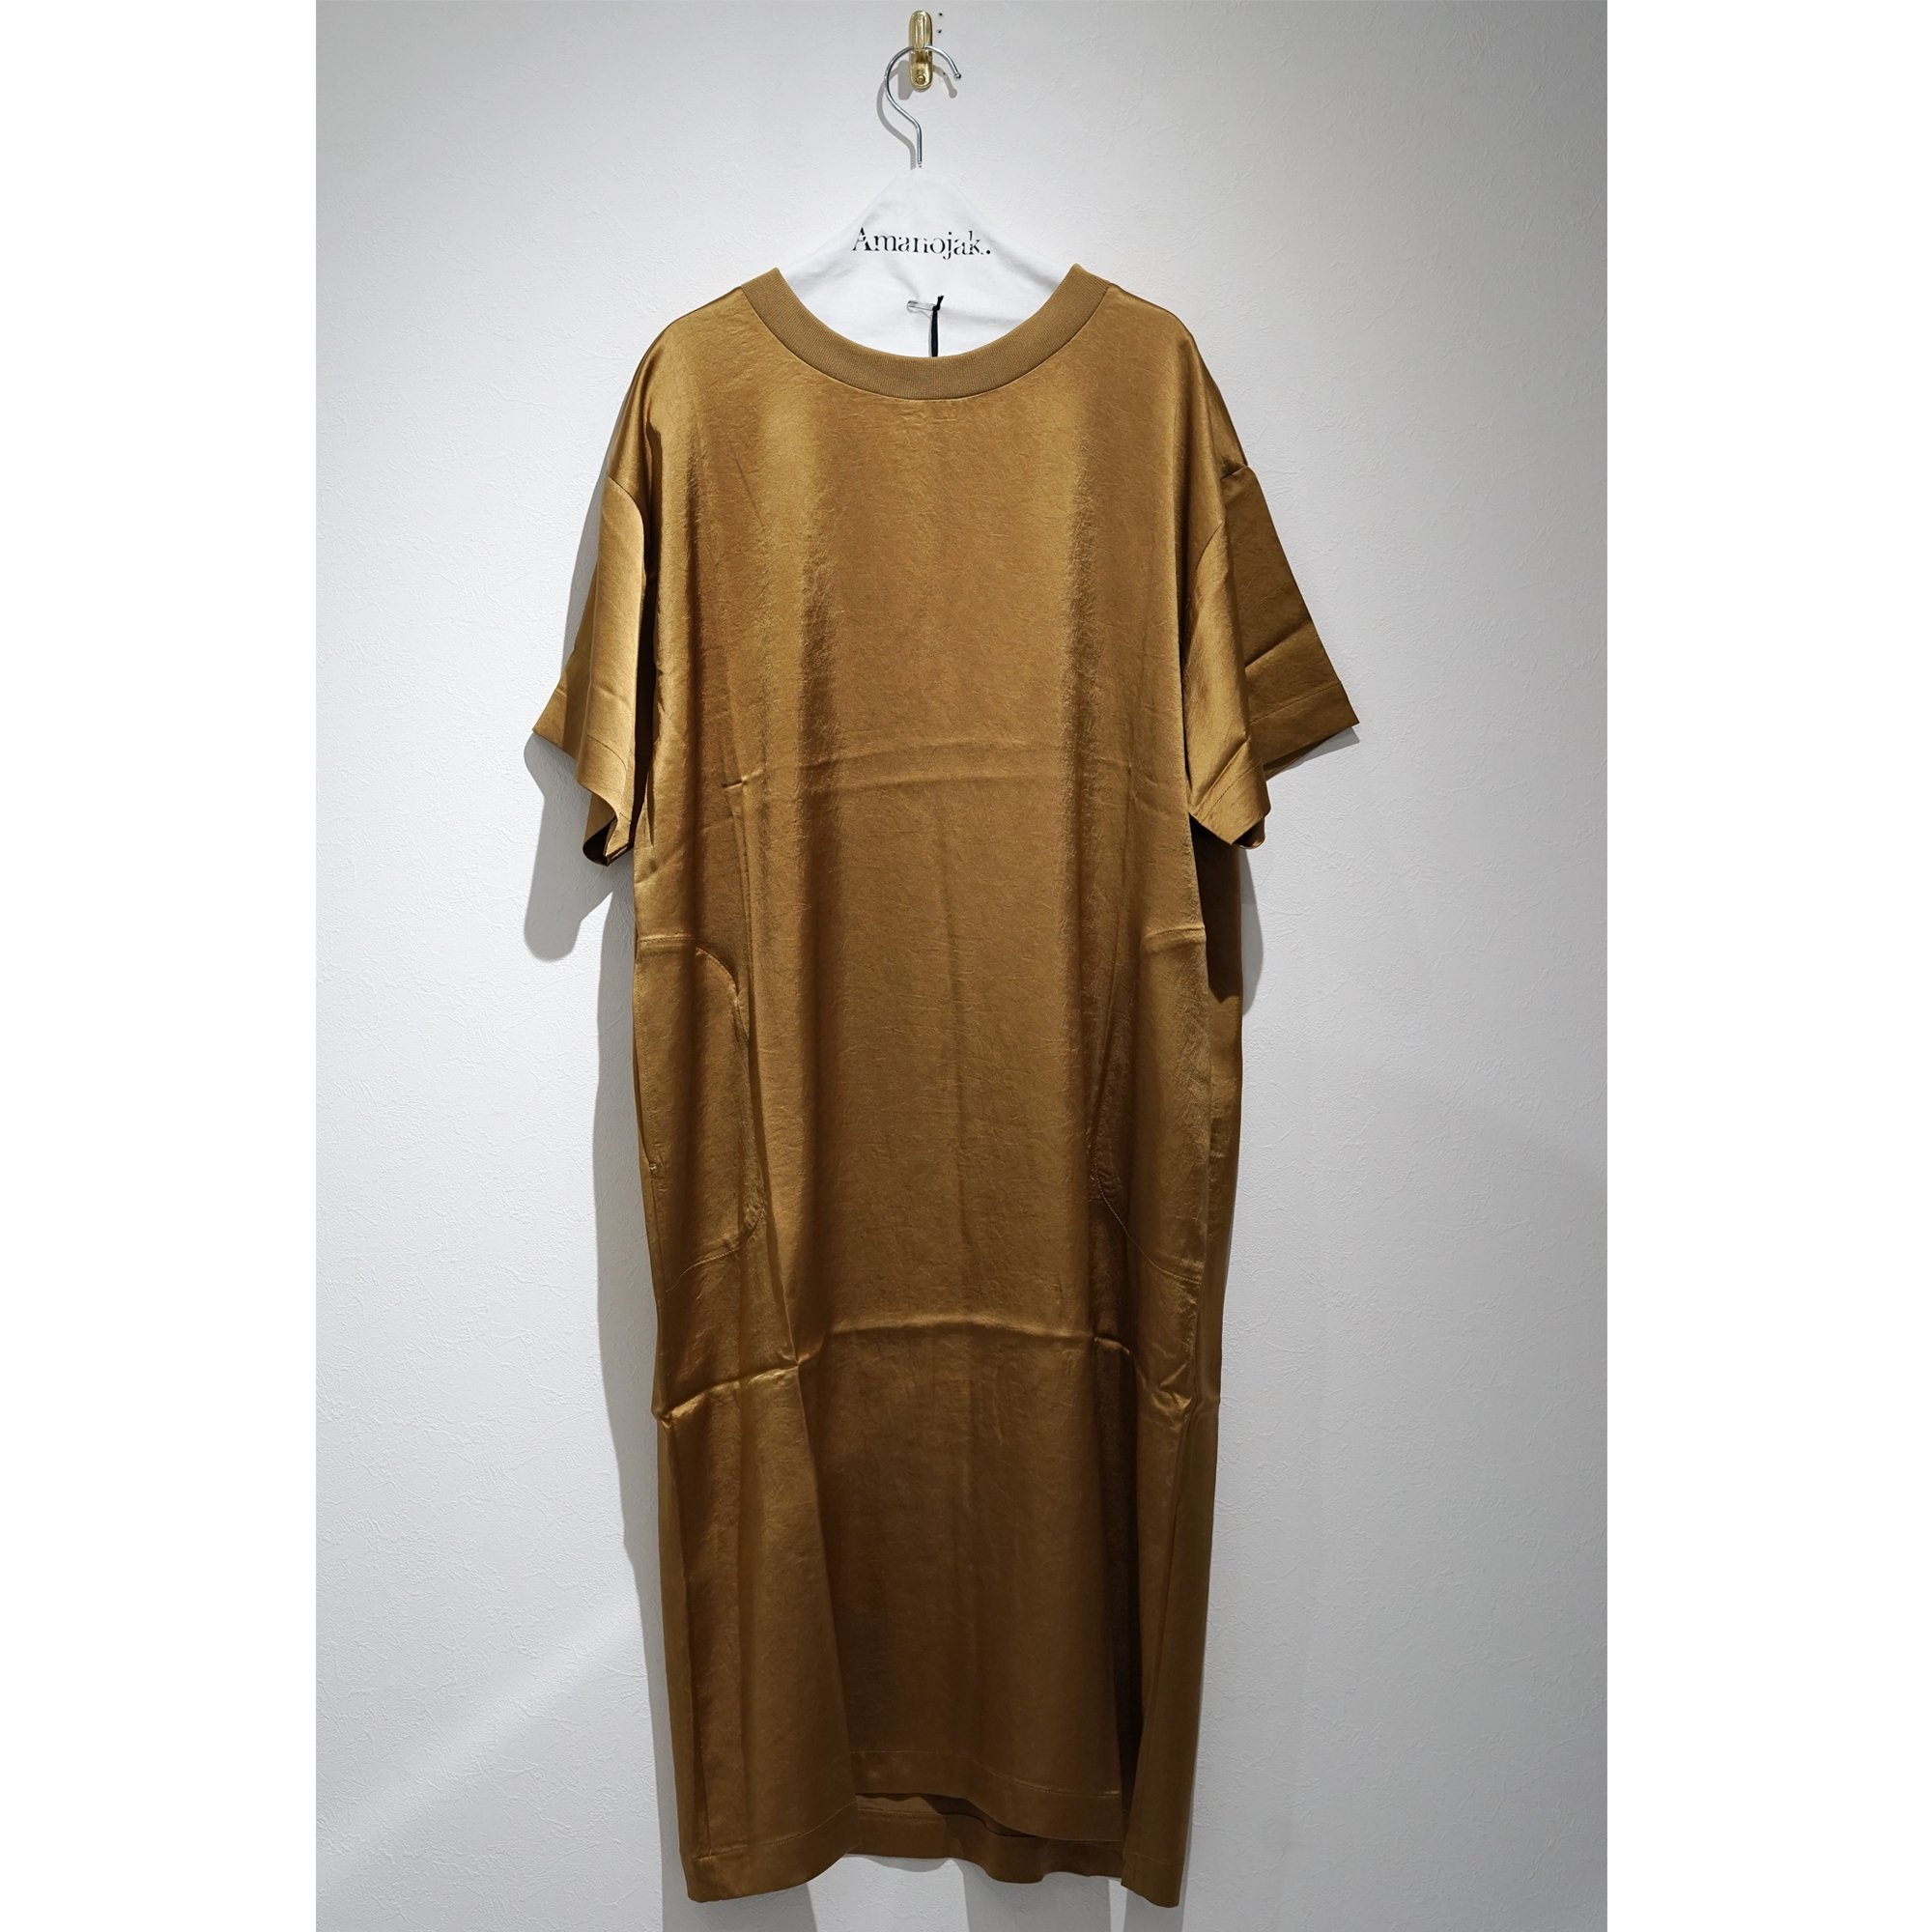 08sircus-VINTAGE WASHER SATIN DRESS GOLDEN ROD